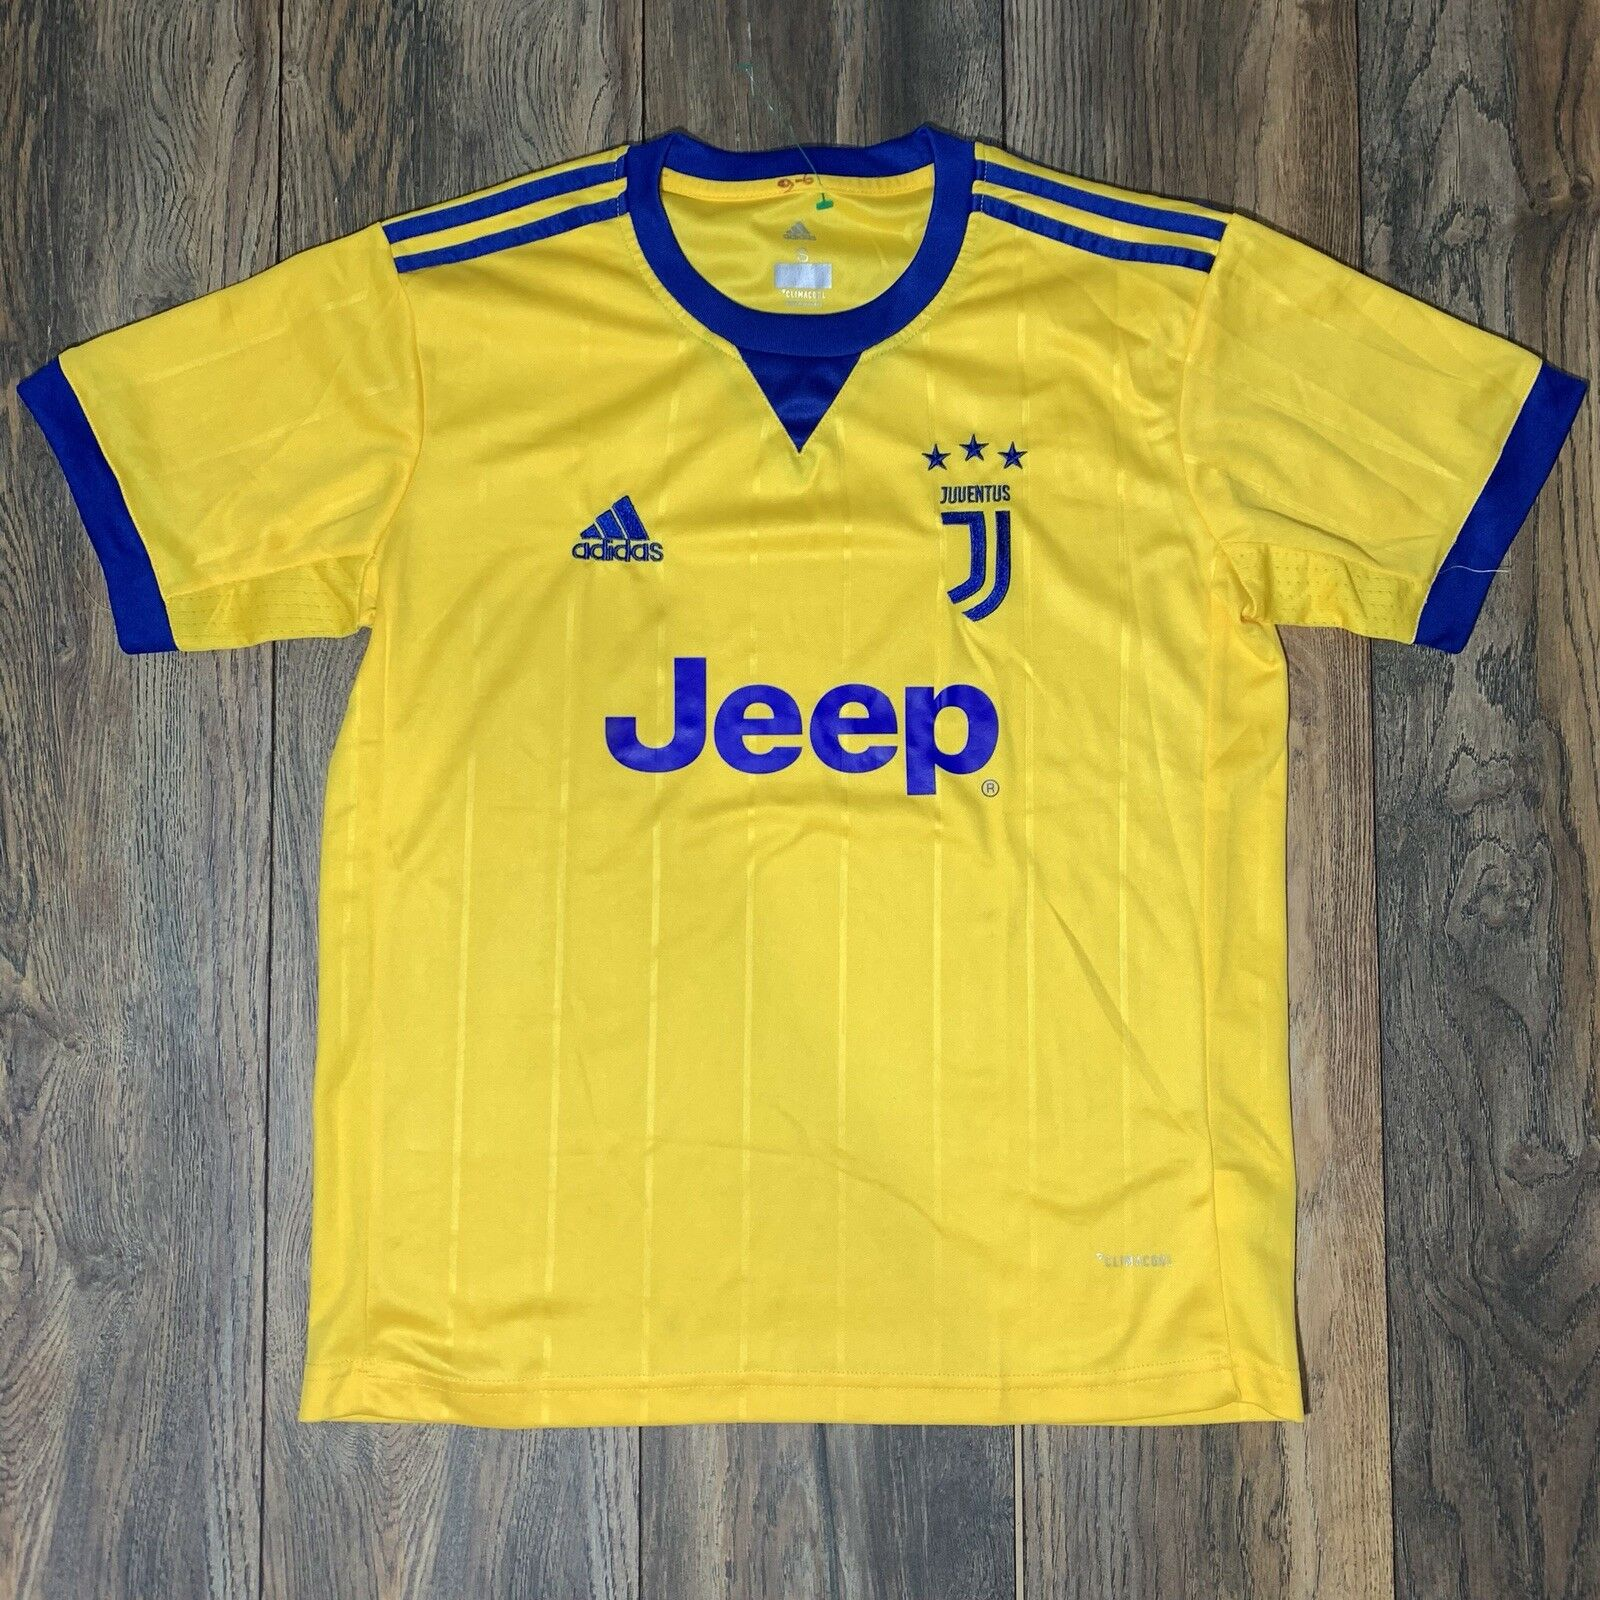 Auth Adidas 17-18 Juventus Soccer Away Yellow Jersey Football Club Size  Small 365514661